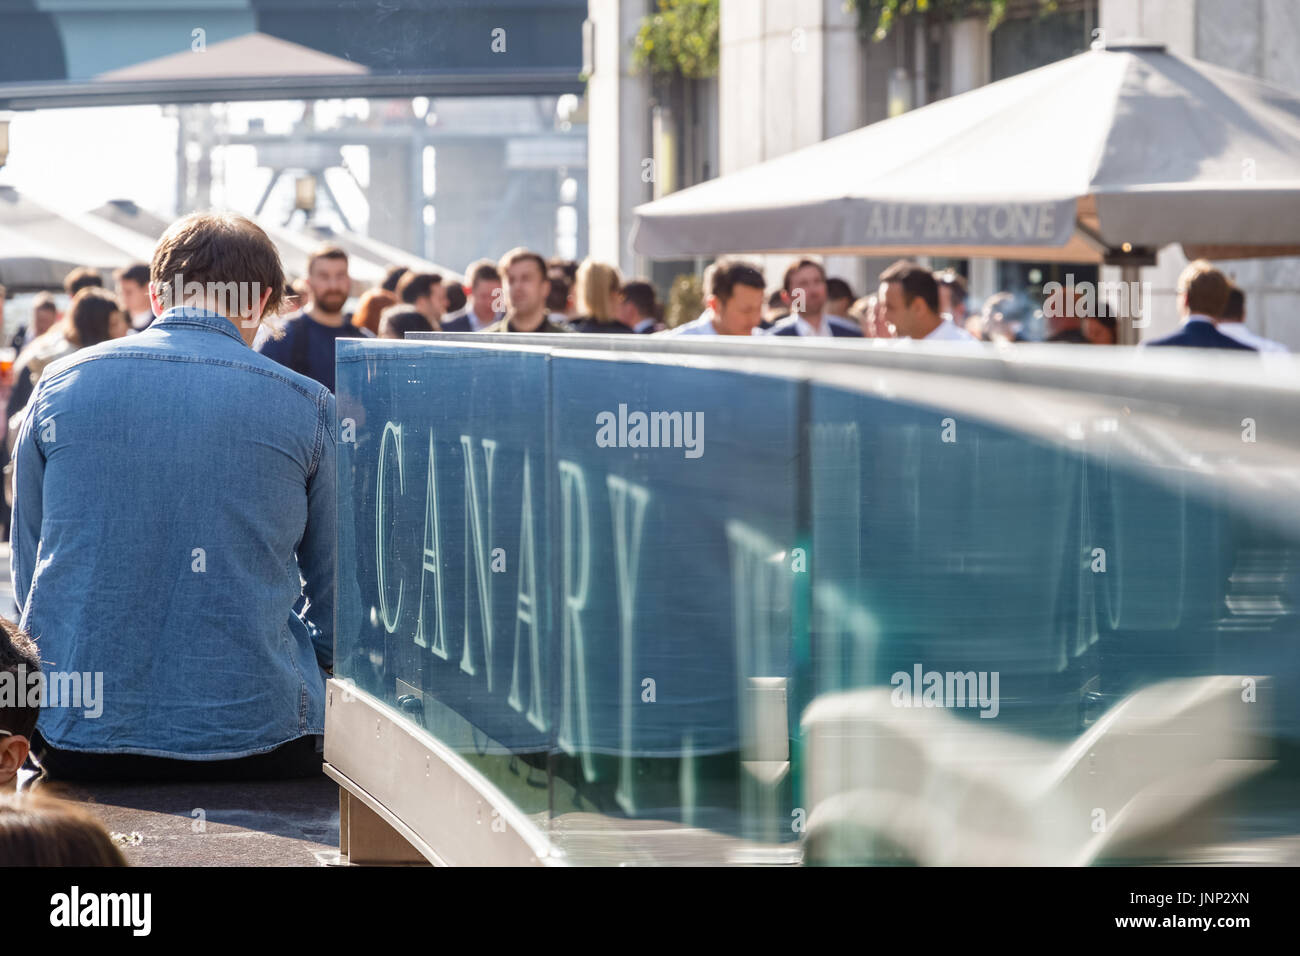 London, UK - May 10, 2017 - Canary Wharf sign with a crowd of people drinking at a dockside bar in the background Stock Photo